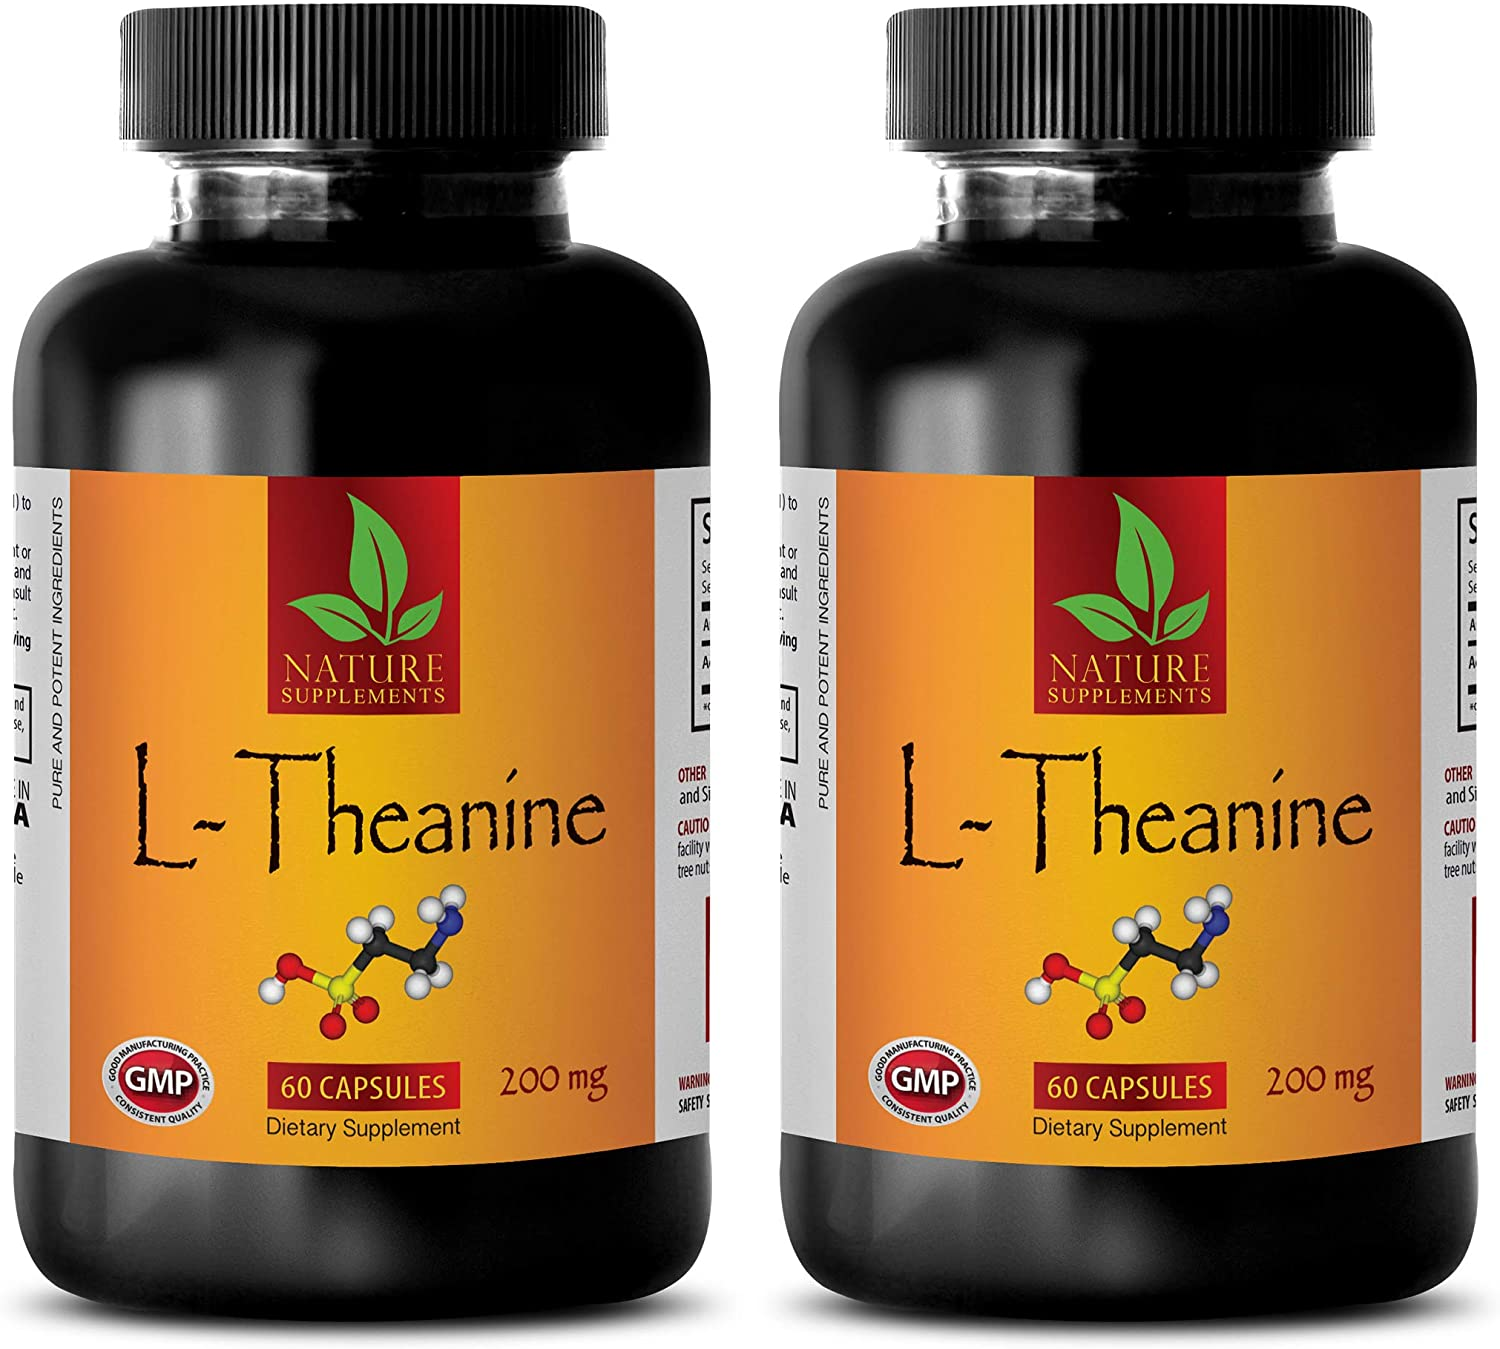 Blood Pressure Health - 200MG trust Baltimore Mall Supplement Dietary L-THEANINE